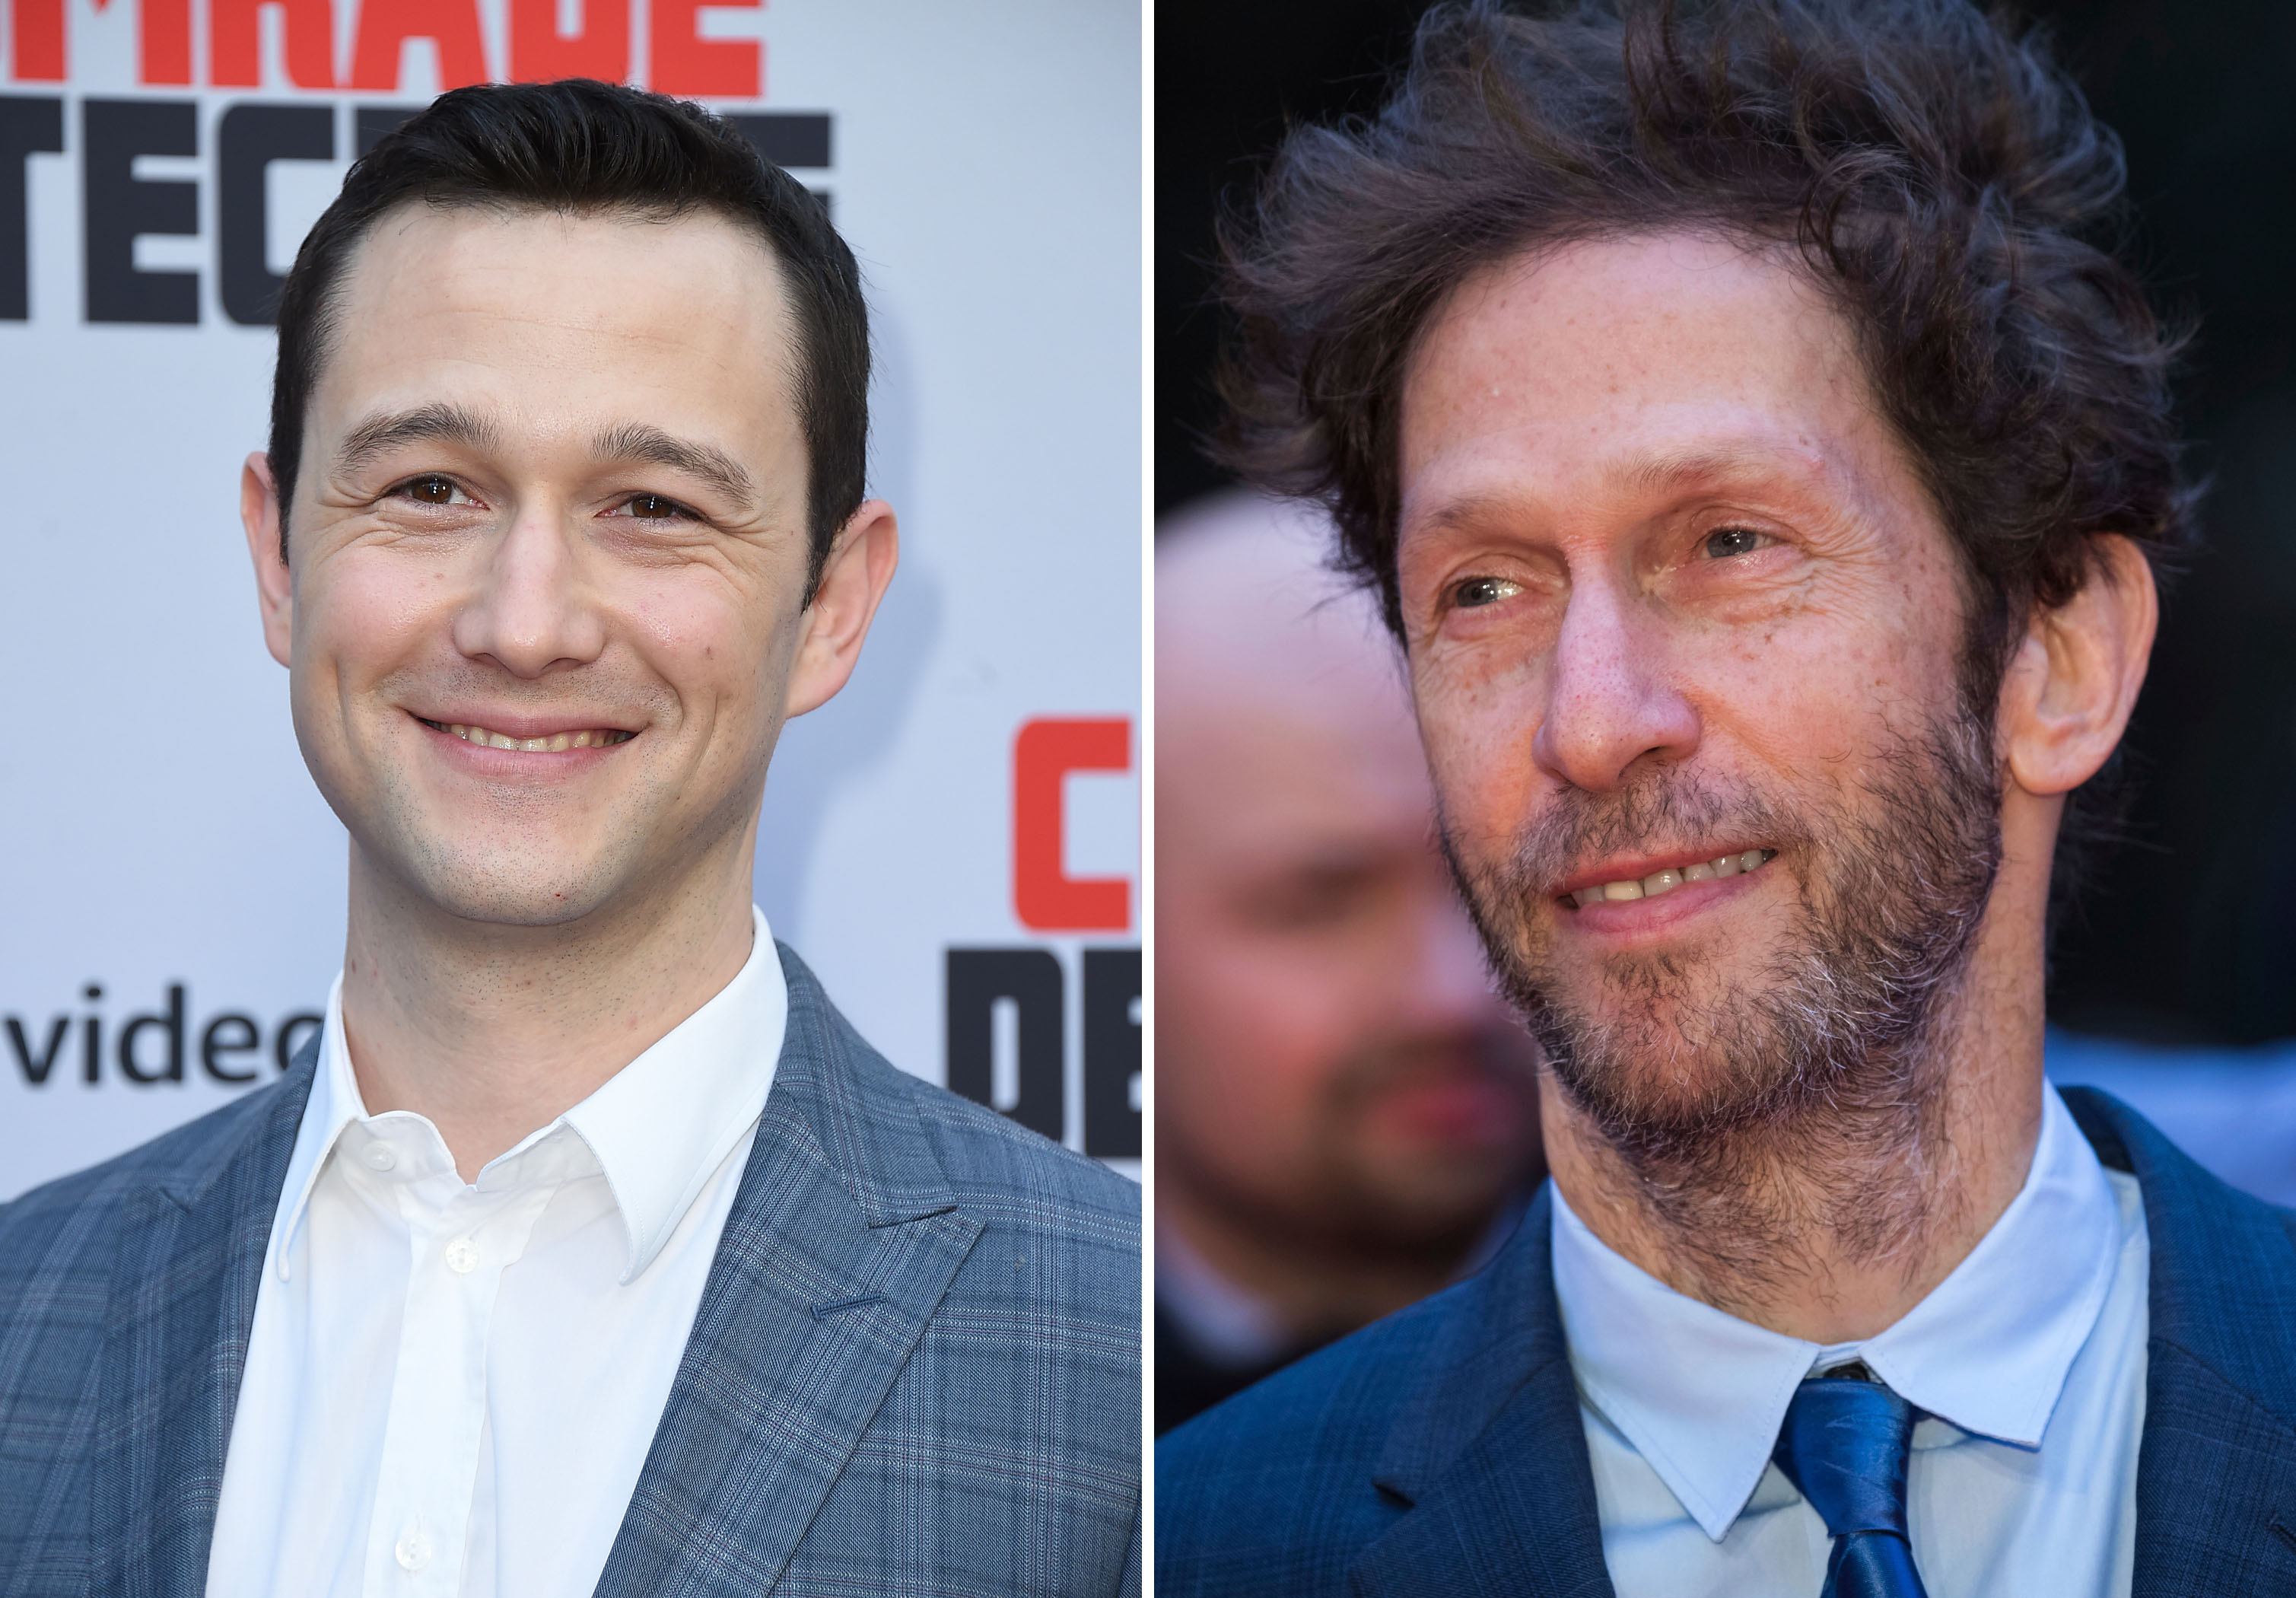 Actors Joseph Gordon-Levitt, left, and Tim Blake Nelson are scheduled to attend separate events at the 2018 New Orleans Film Festival on Saturday (Oct. 20, 2018) (AP photos)